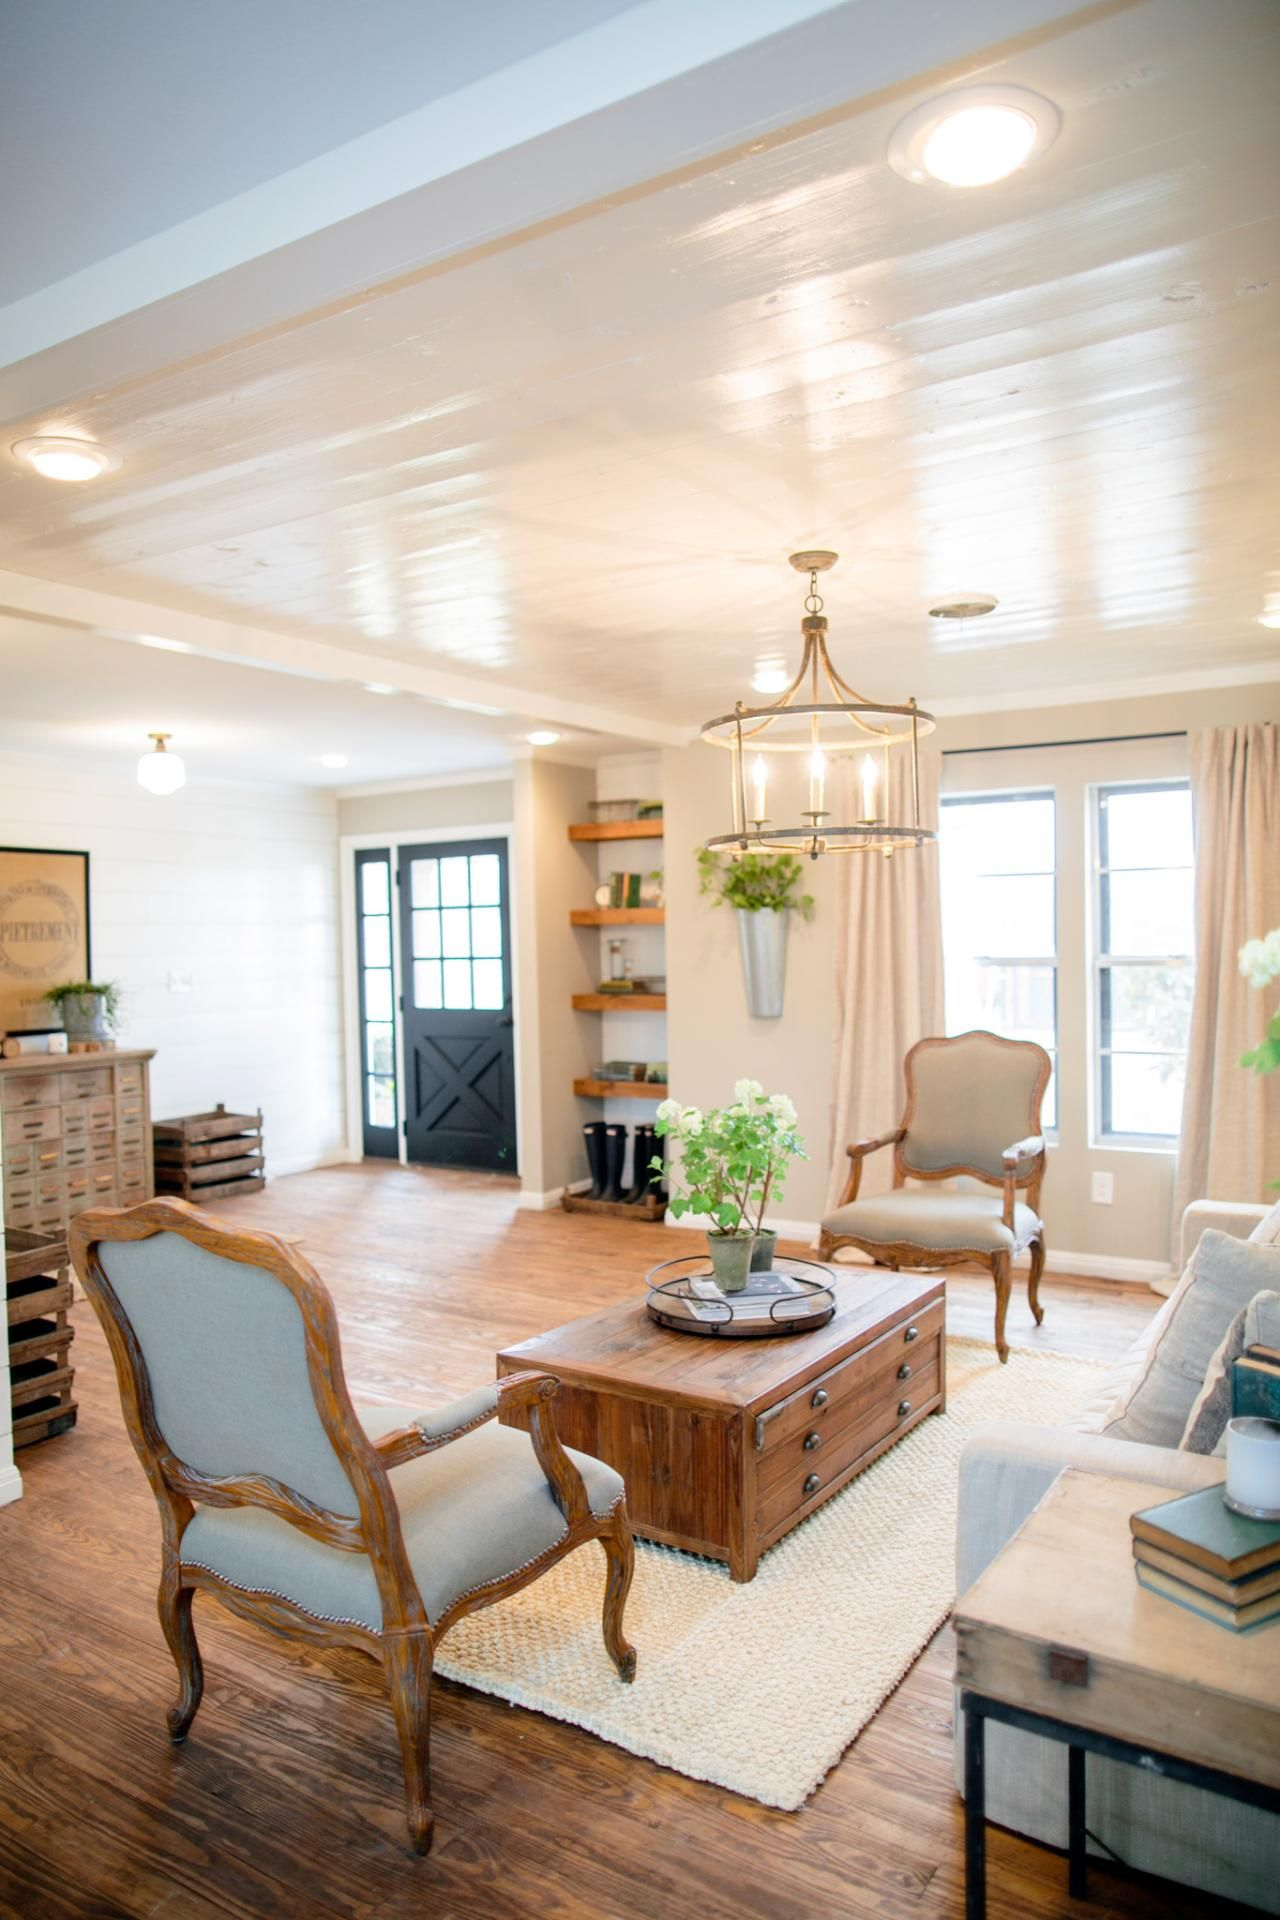 Decorating with shiplap ideas from hgtv 39 s fixer upper for Images of rooms with shiplap